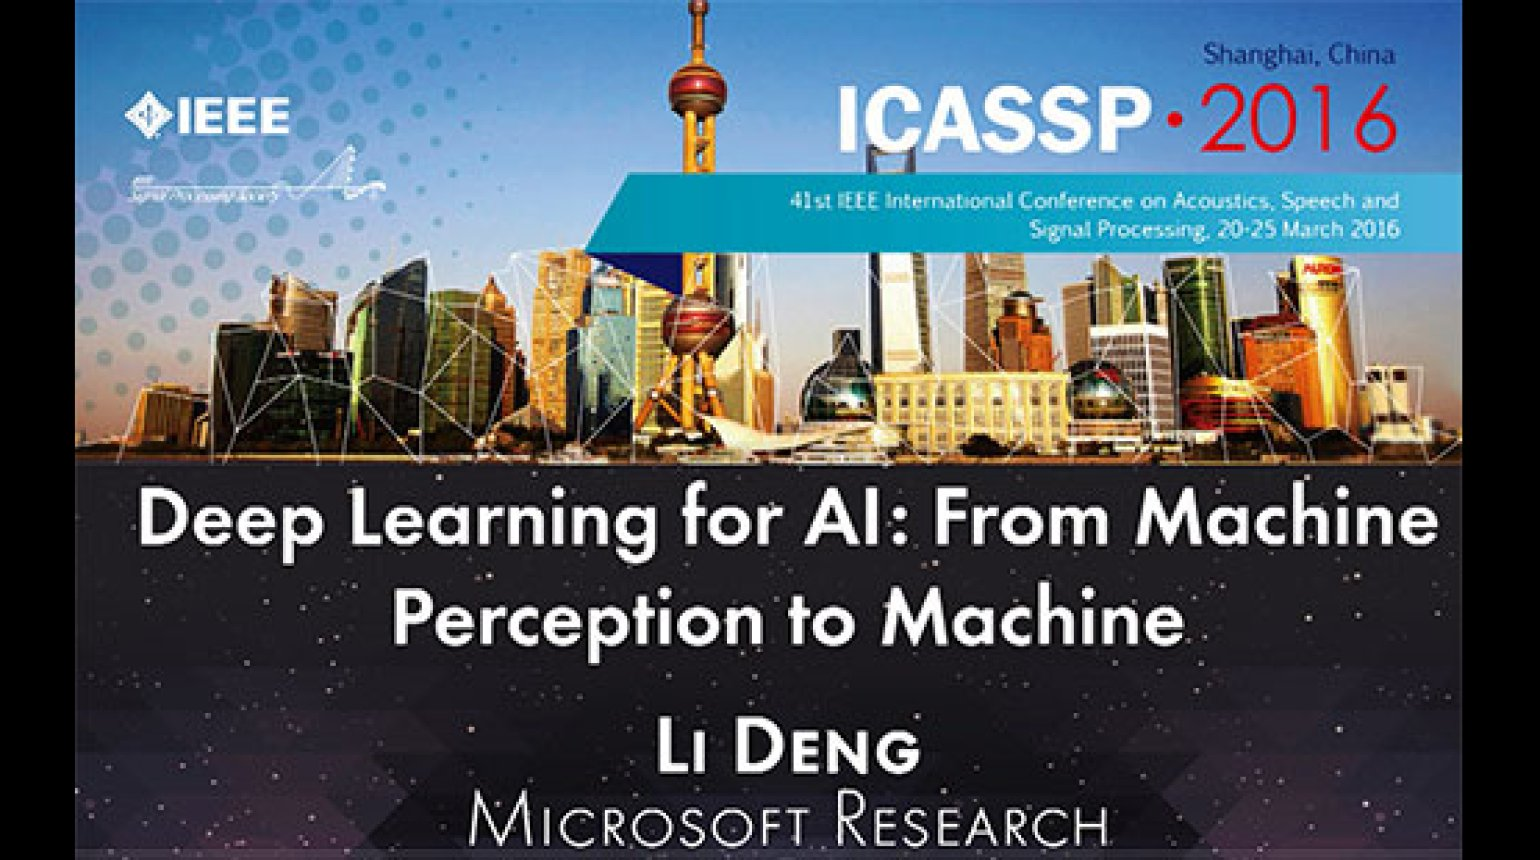 Deep Learning for AI: From Machine Perception to Machine (ICASSP 2016)